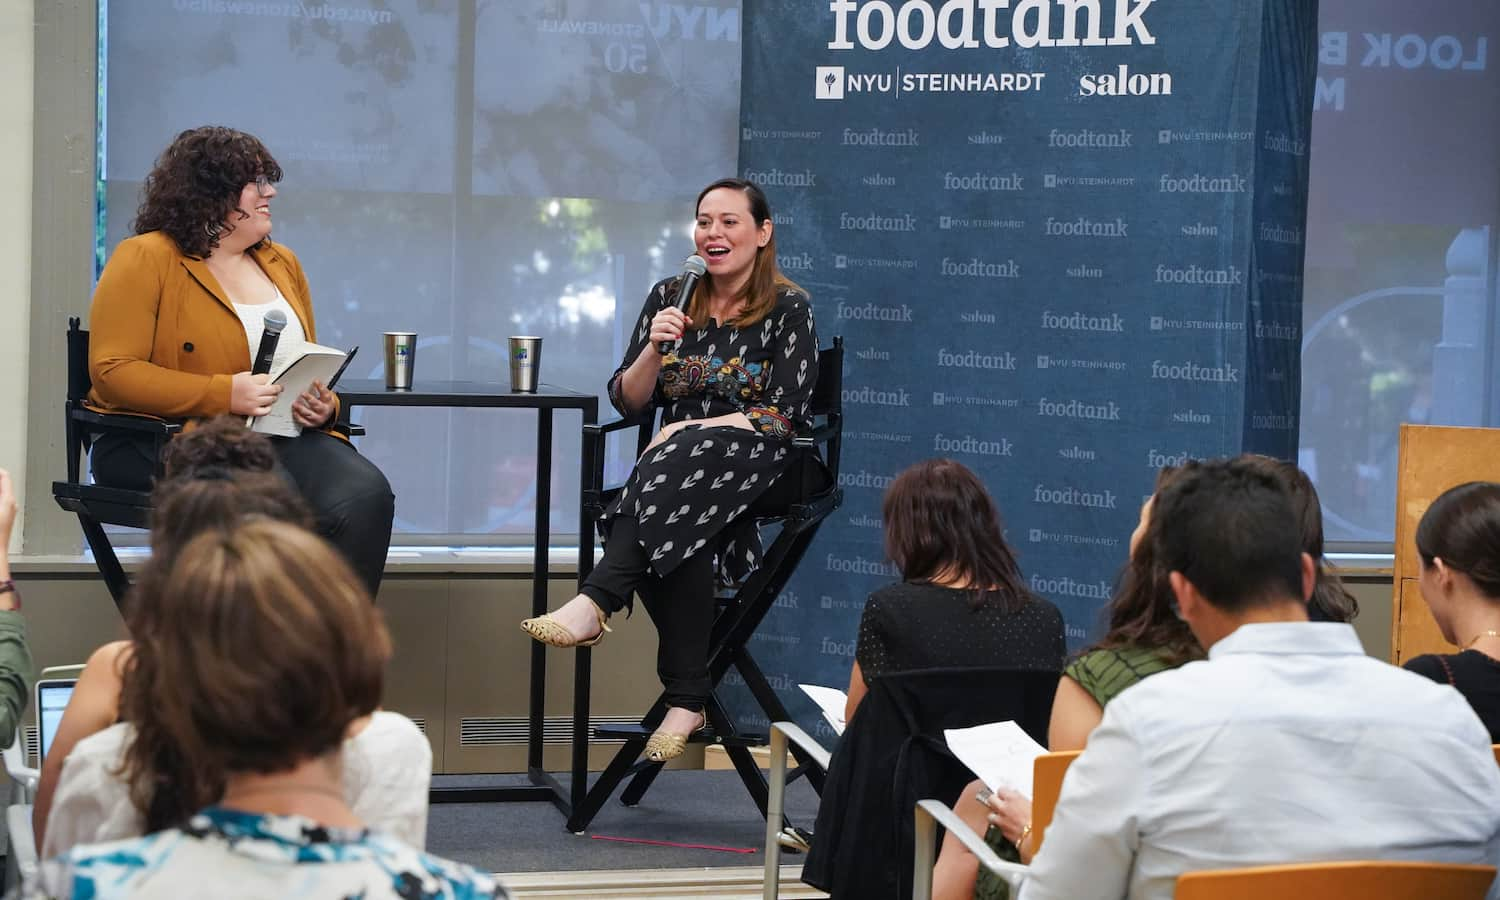 Food isn't immune to technology's influence as AI and Big Data create opportunities for innovation as well as risks. At Food Tank's second monthly conversation at NYU, experts evaluate the fork in the road for the future dividing good and bad food tech.